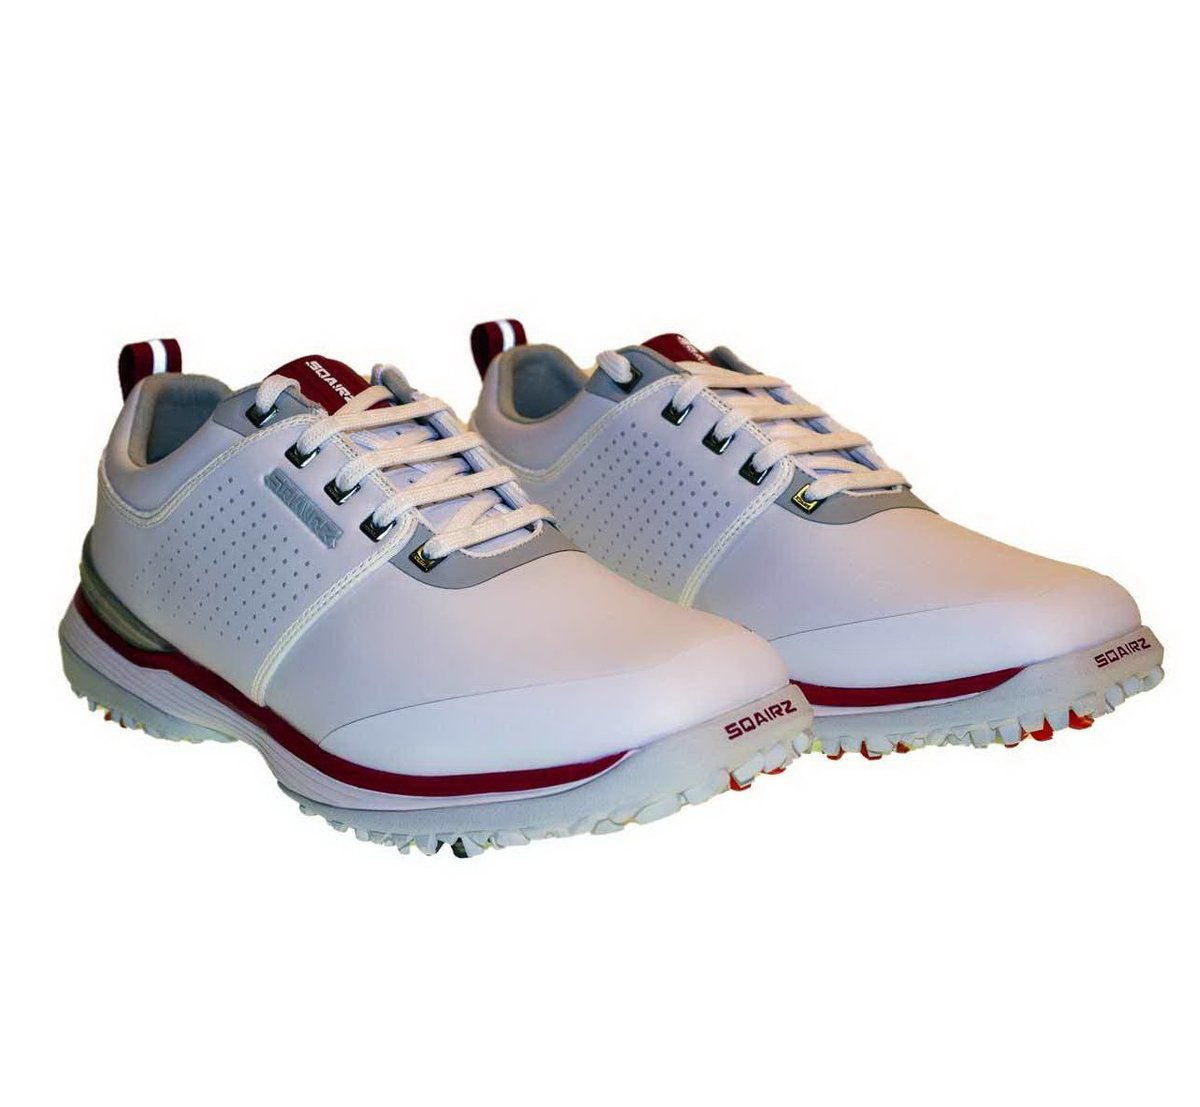 Golfshoes Hashtag On Twitter